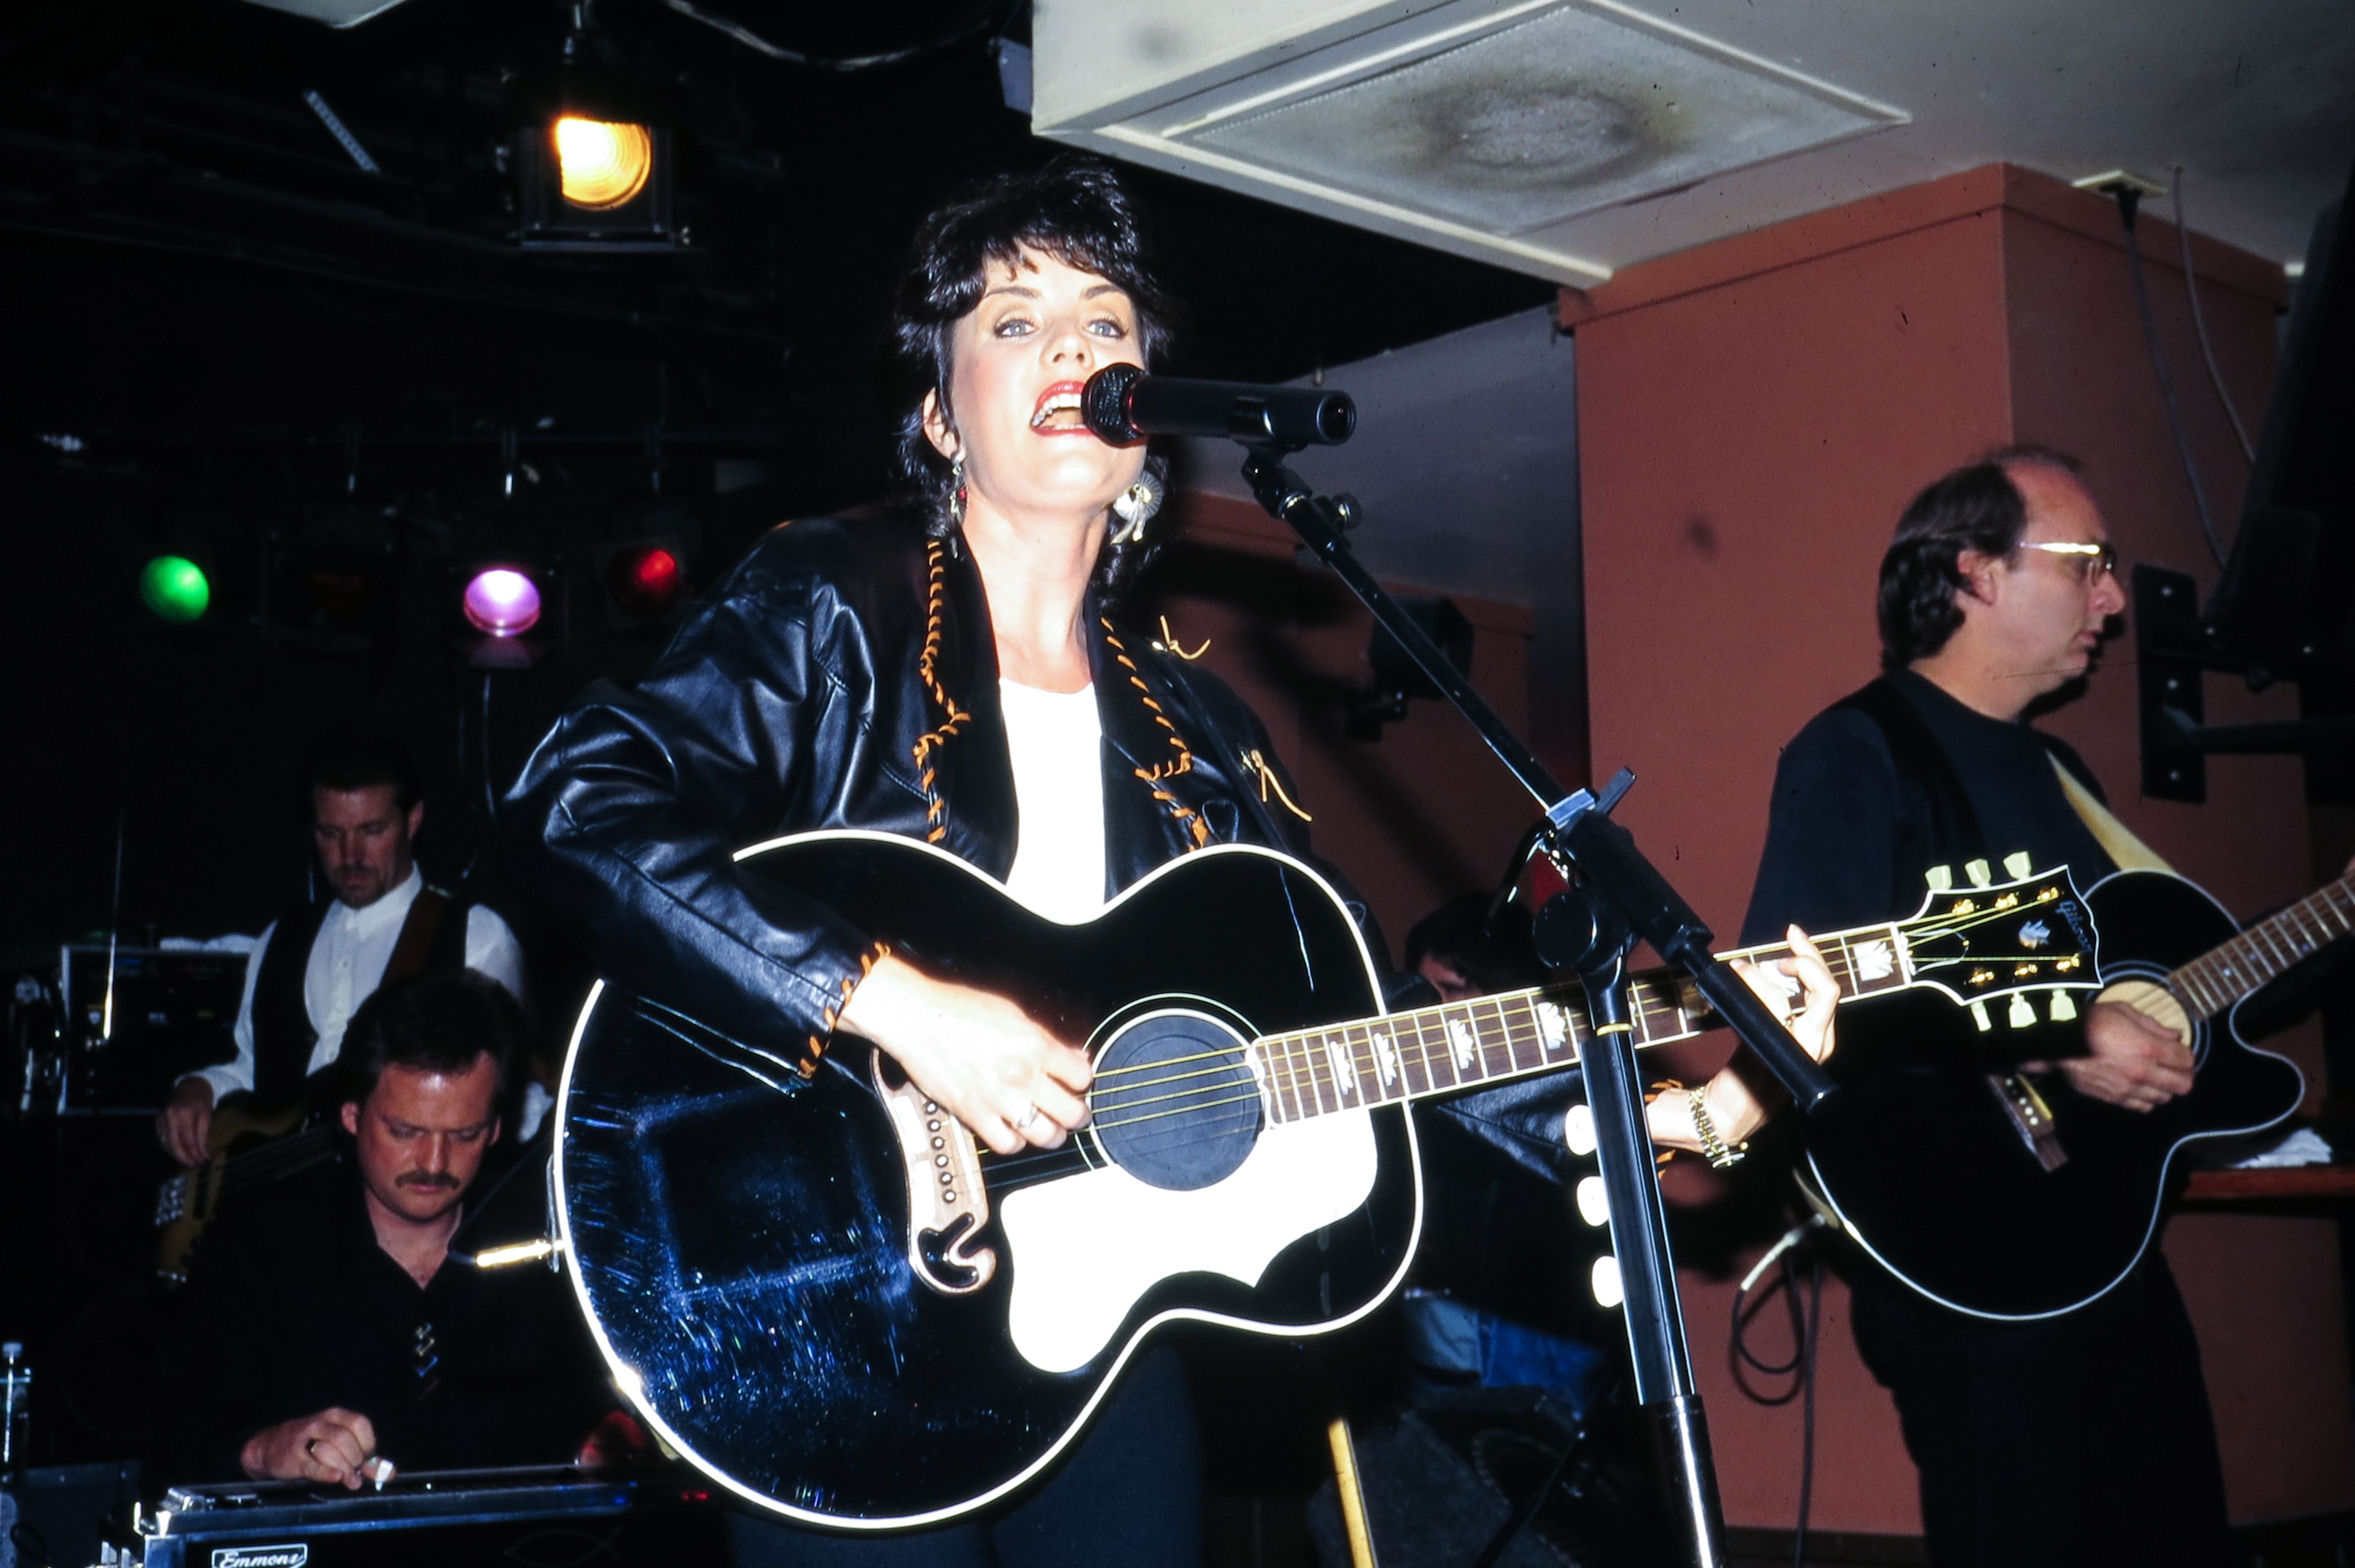 Holly Dunn perfomed in New York, New York, on May 18, 1995. | Photo: Getty Images